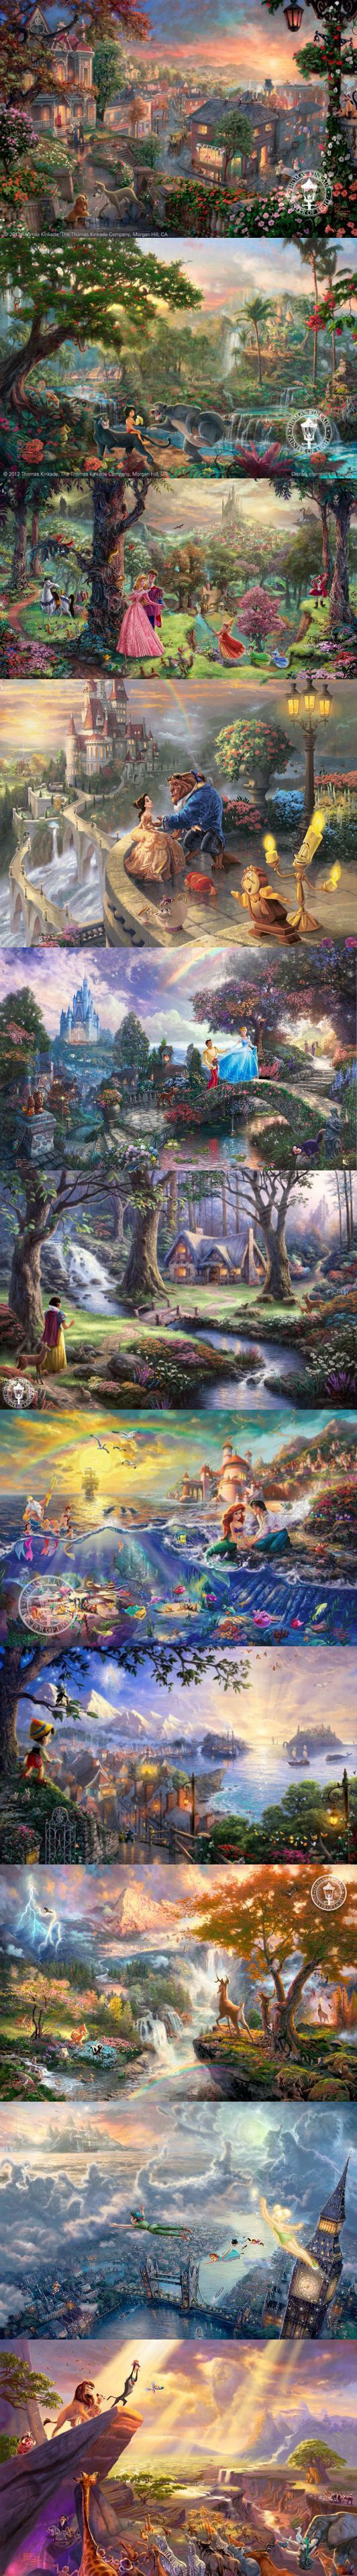 Thomas Kinkade Disney...love all these! So beautiful!